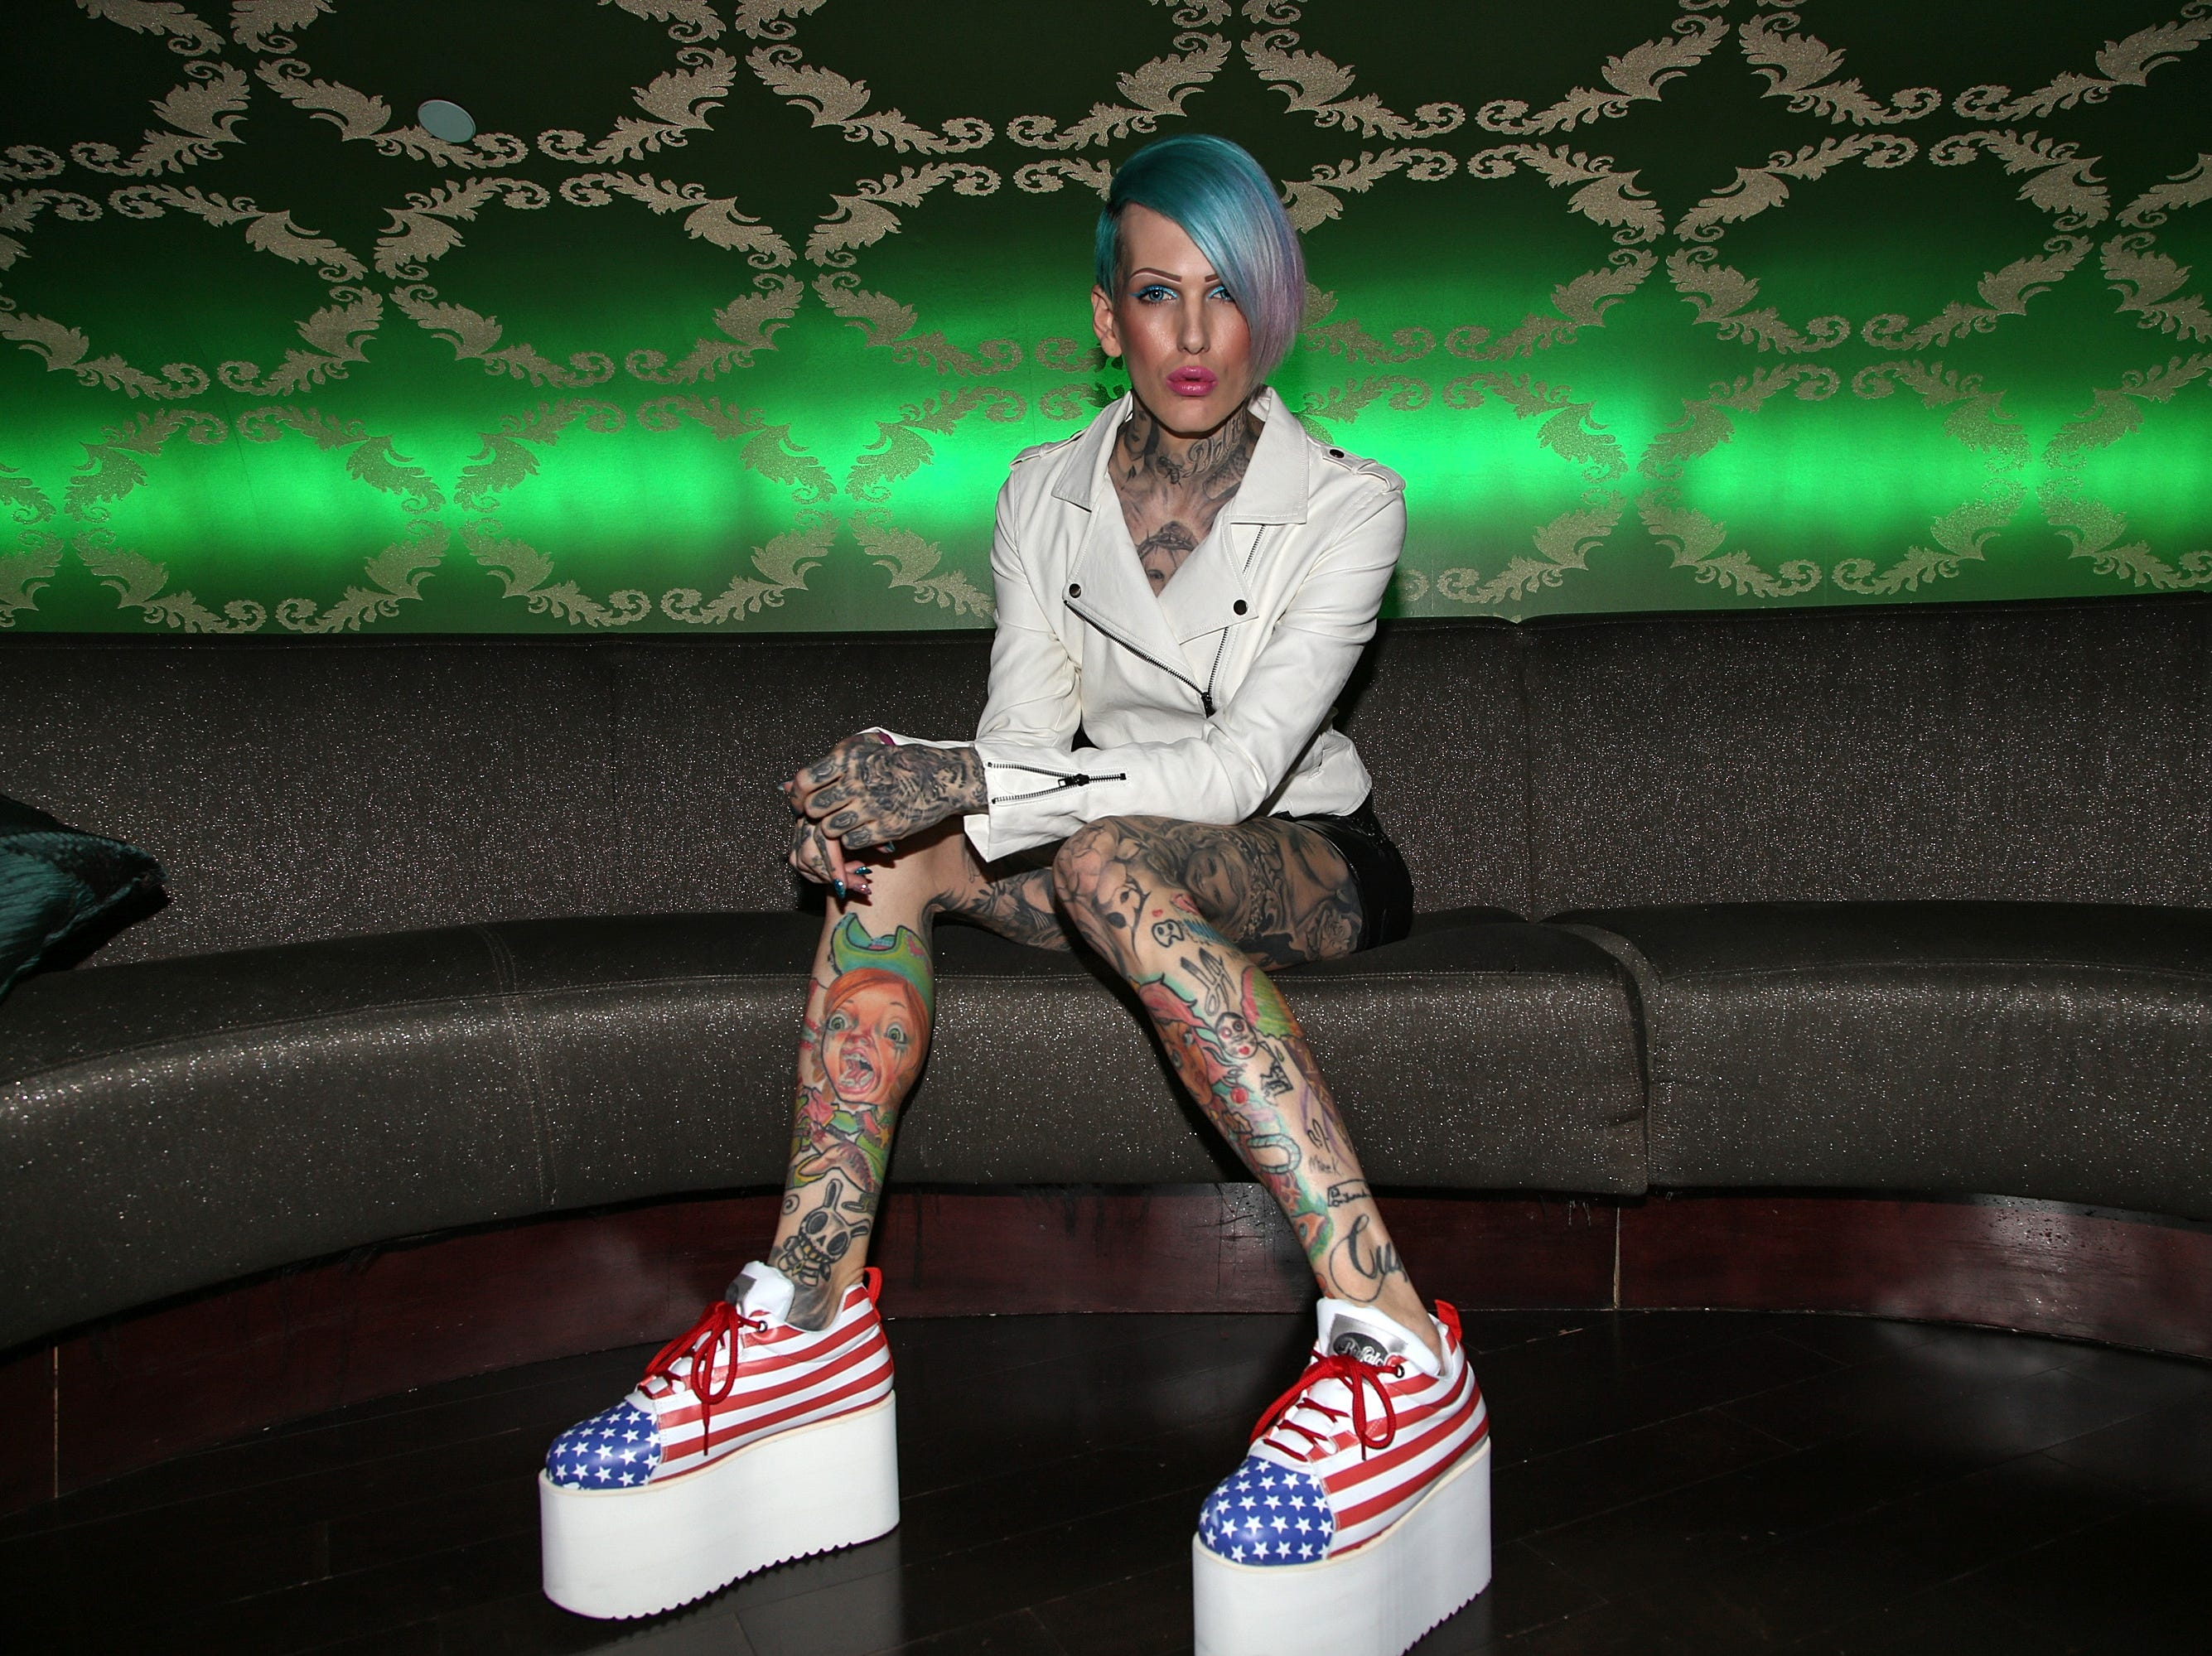 Jeffree Star attends the 2013 Vans Warped Tour Press Conference And Kick-Off Party held at Club Nokia on March 28, 2013 in Los Angeles, California.  (Photo by Paul A. Hebert/Invision/AP)